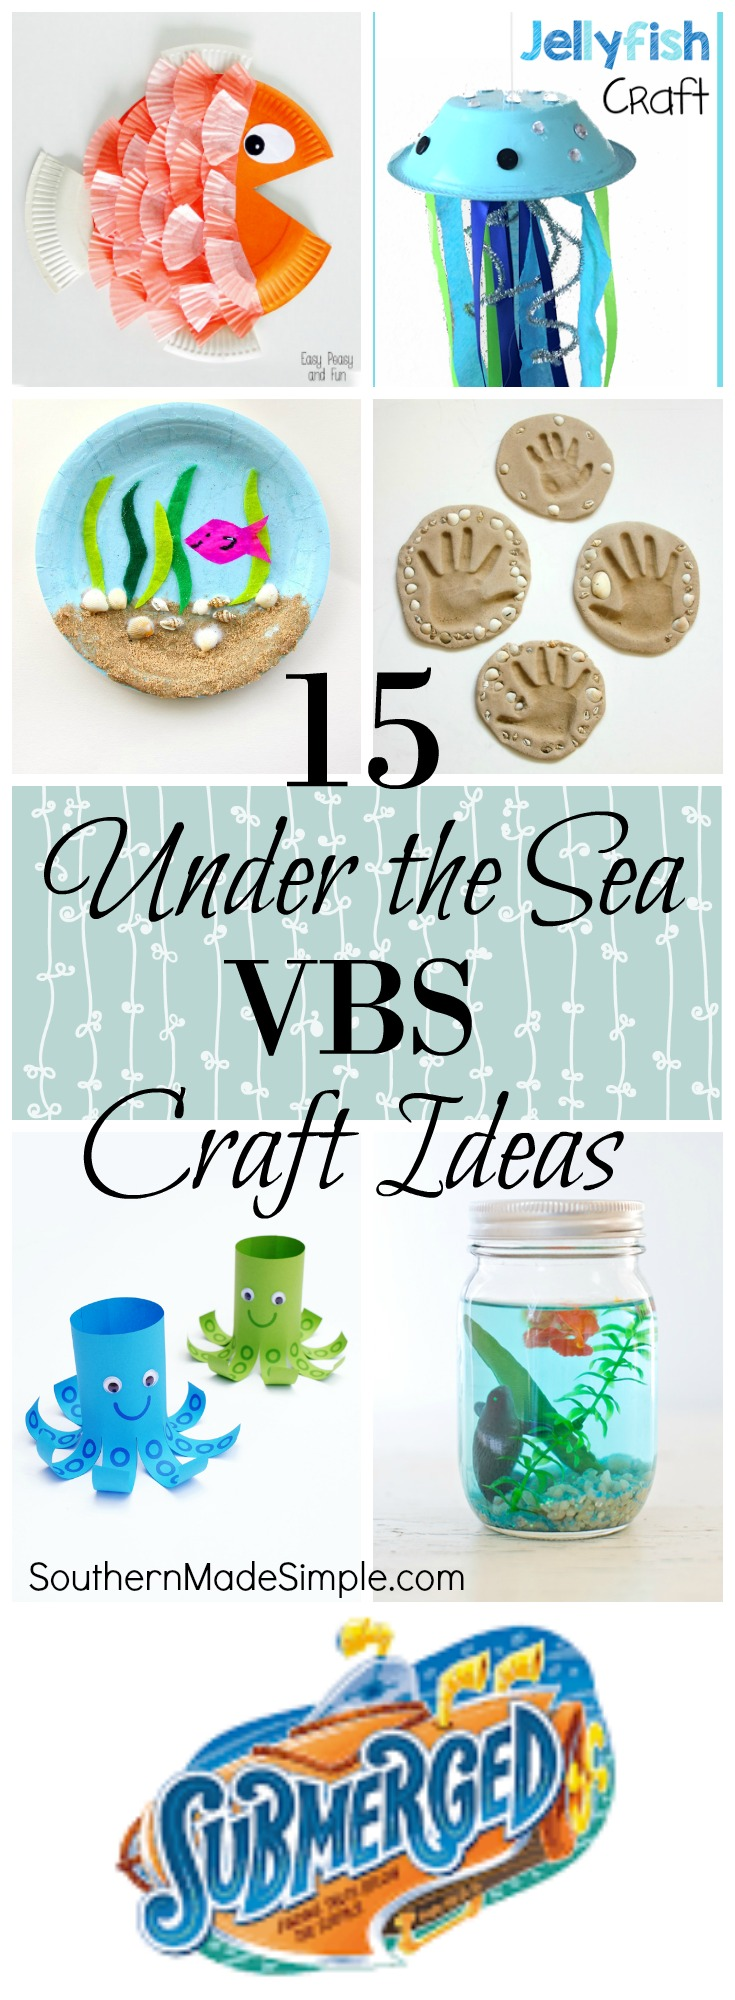 15 Craft Ideas for VBS Submerged Lifeway Theme #submerged #lifeway #underthesea